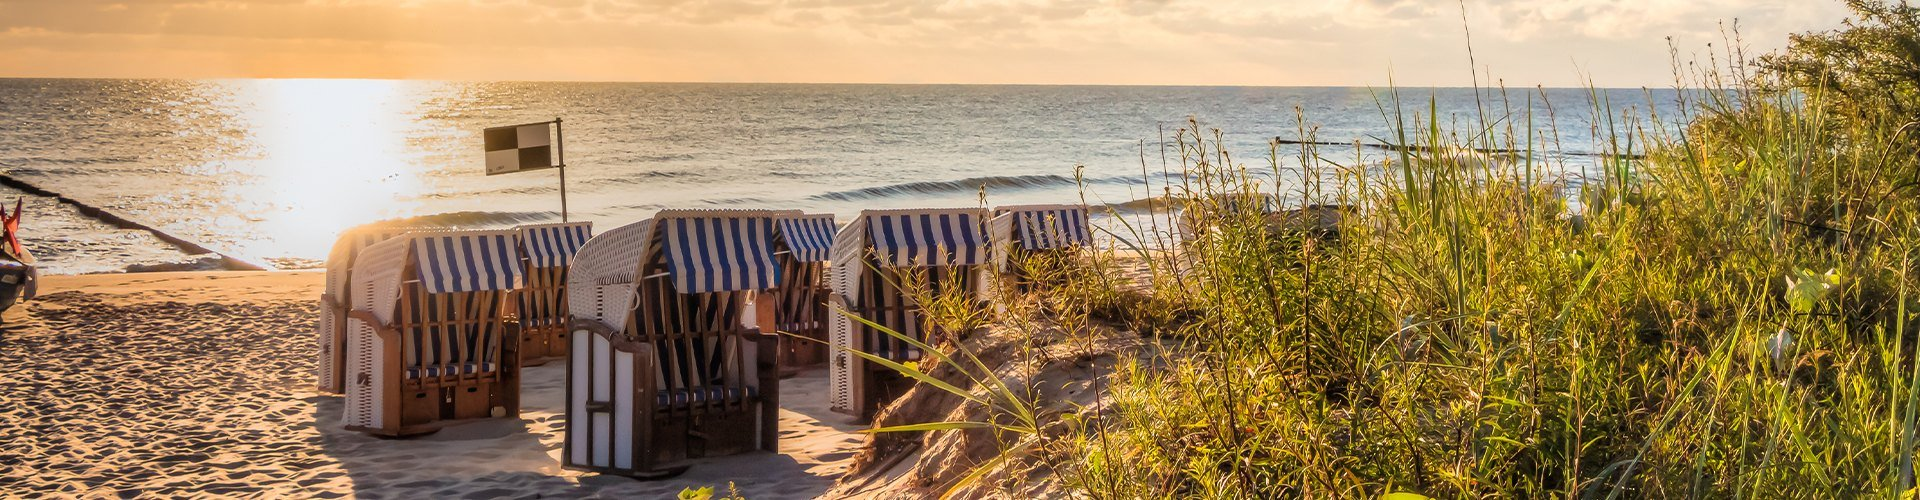 Usedom Wetter 16 Tage